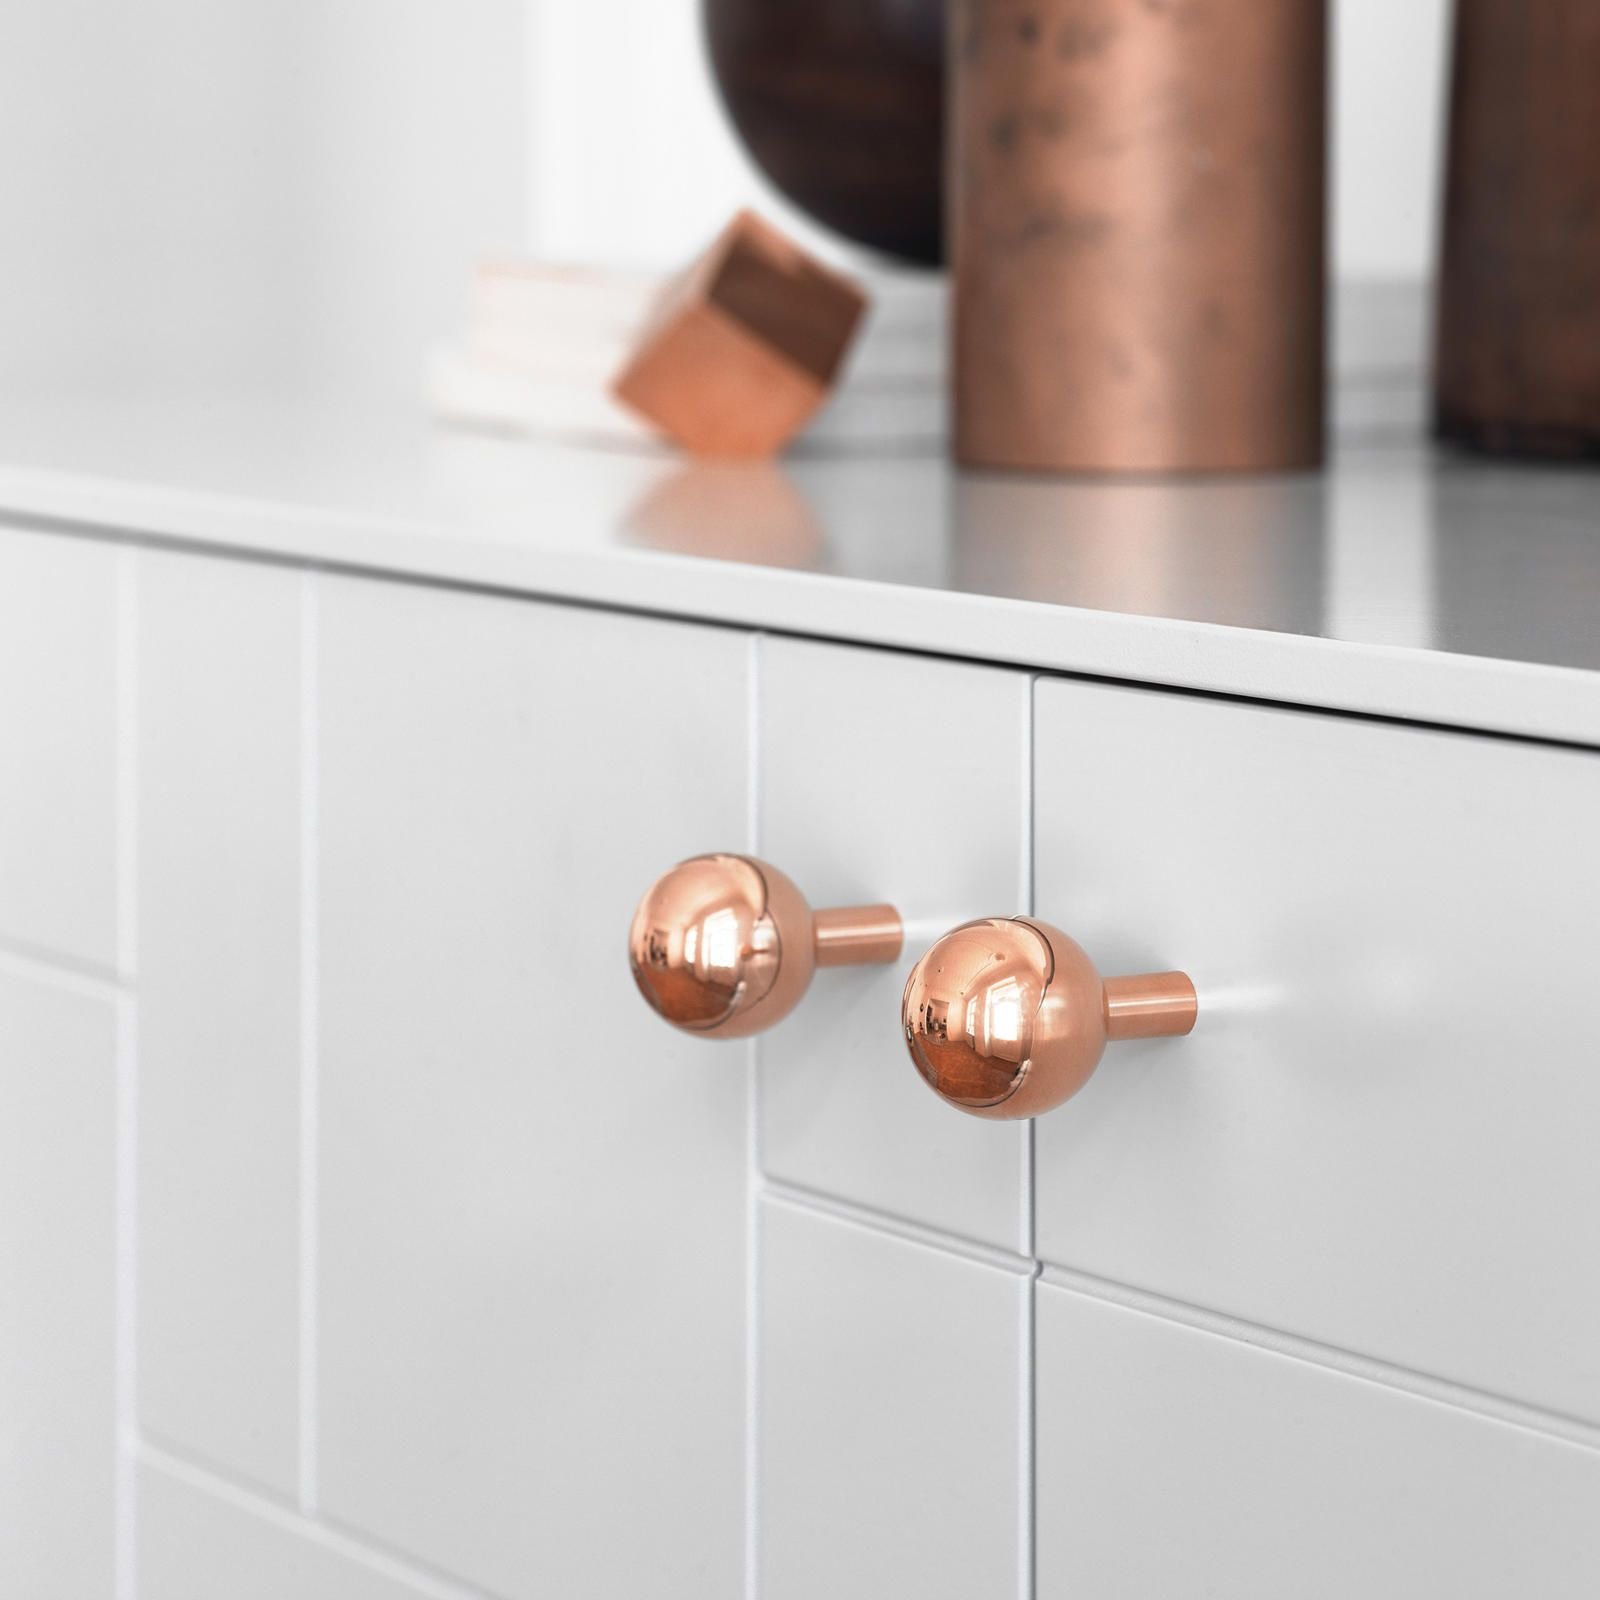 IKEA replacement knobs in copper